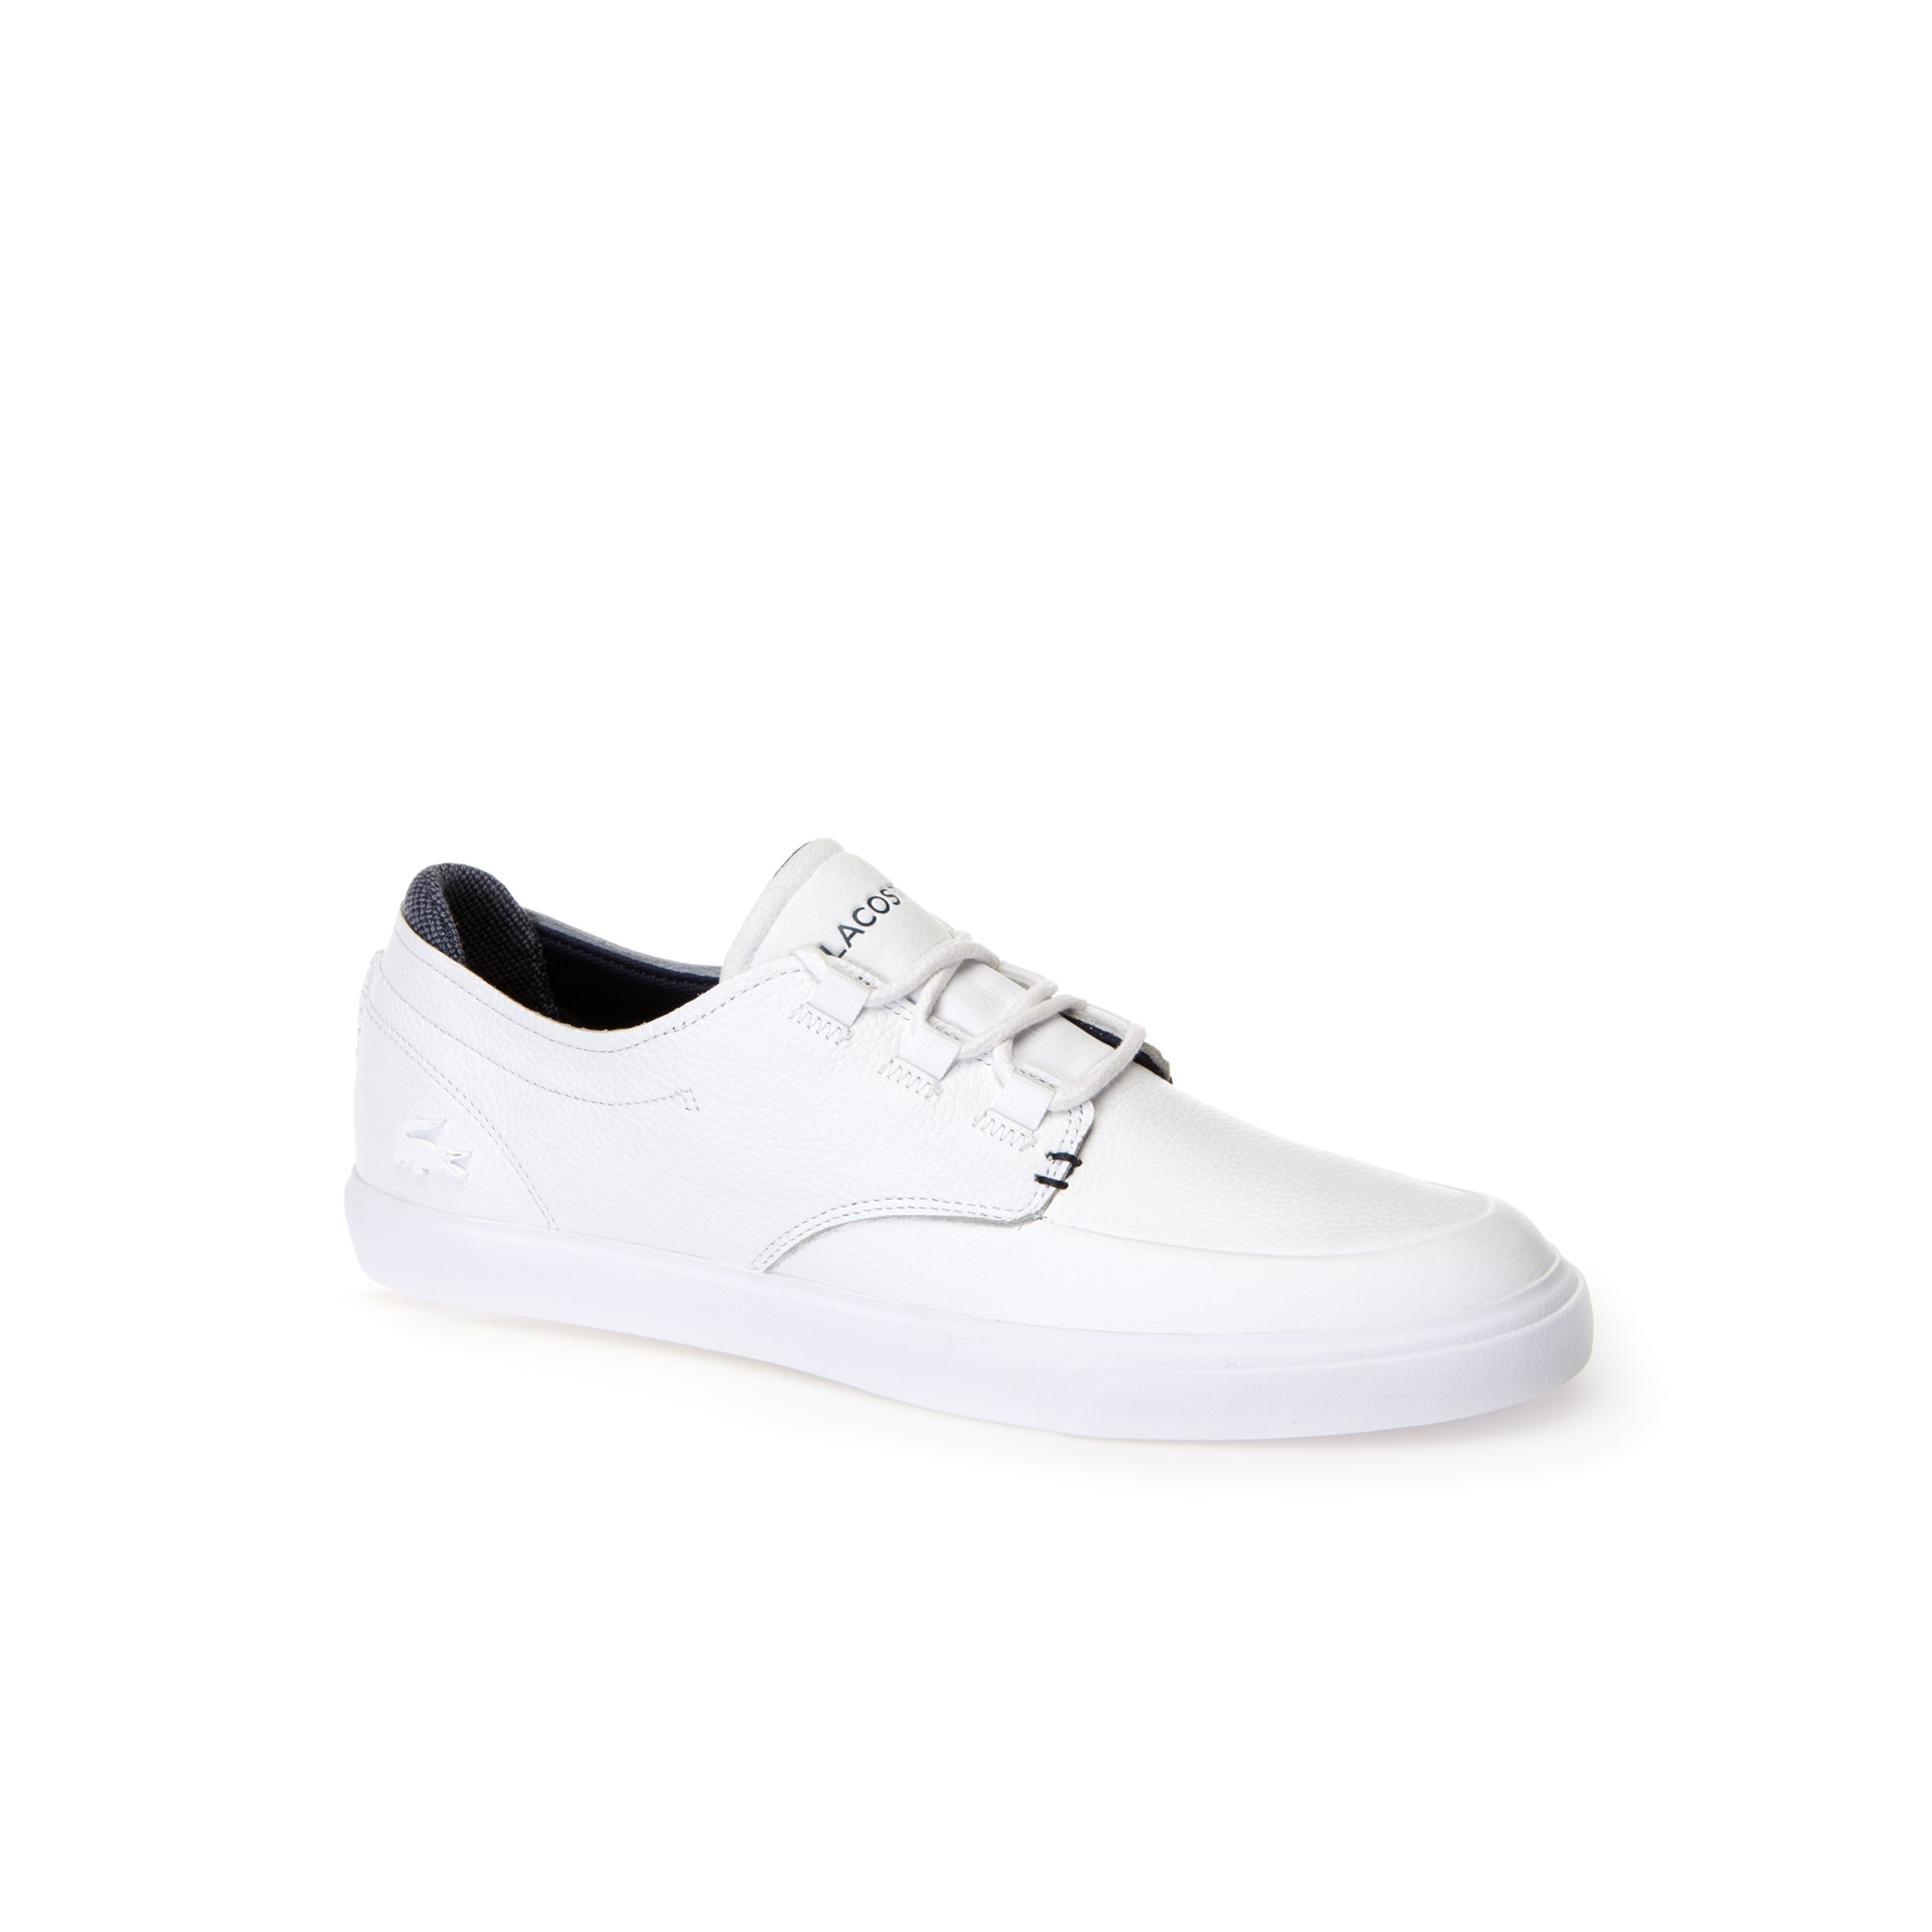 Men's Esparre Leather Deck Shoes